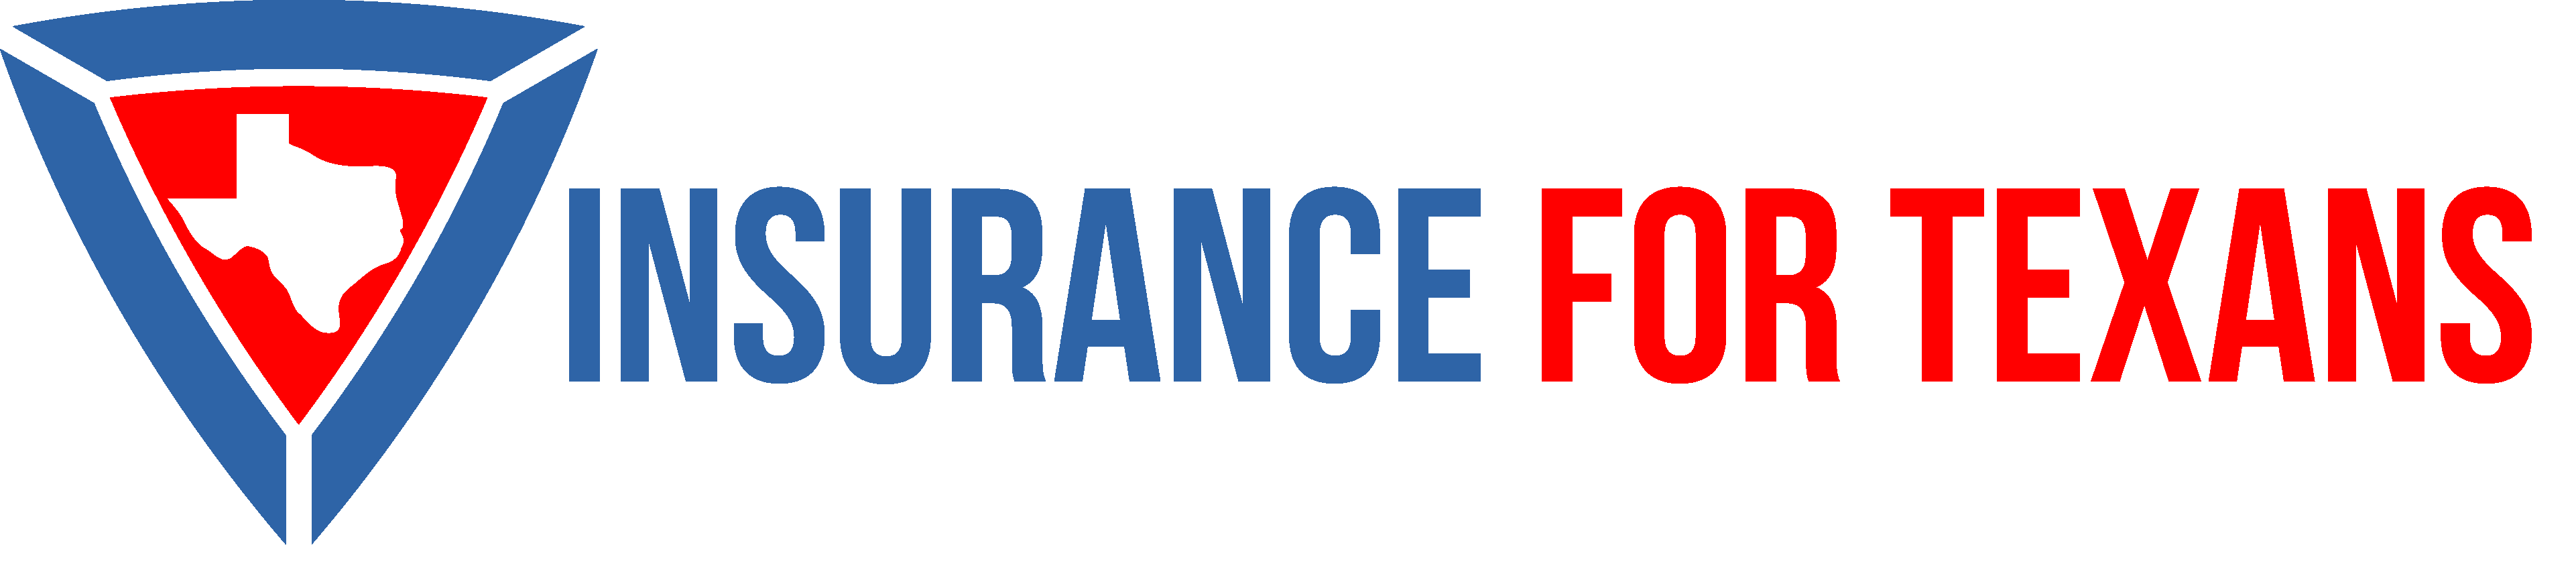 insurancefortexan